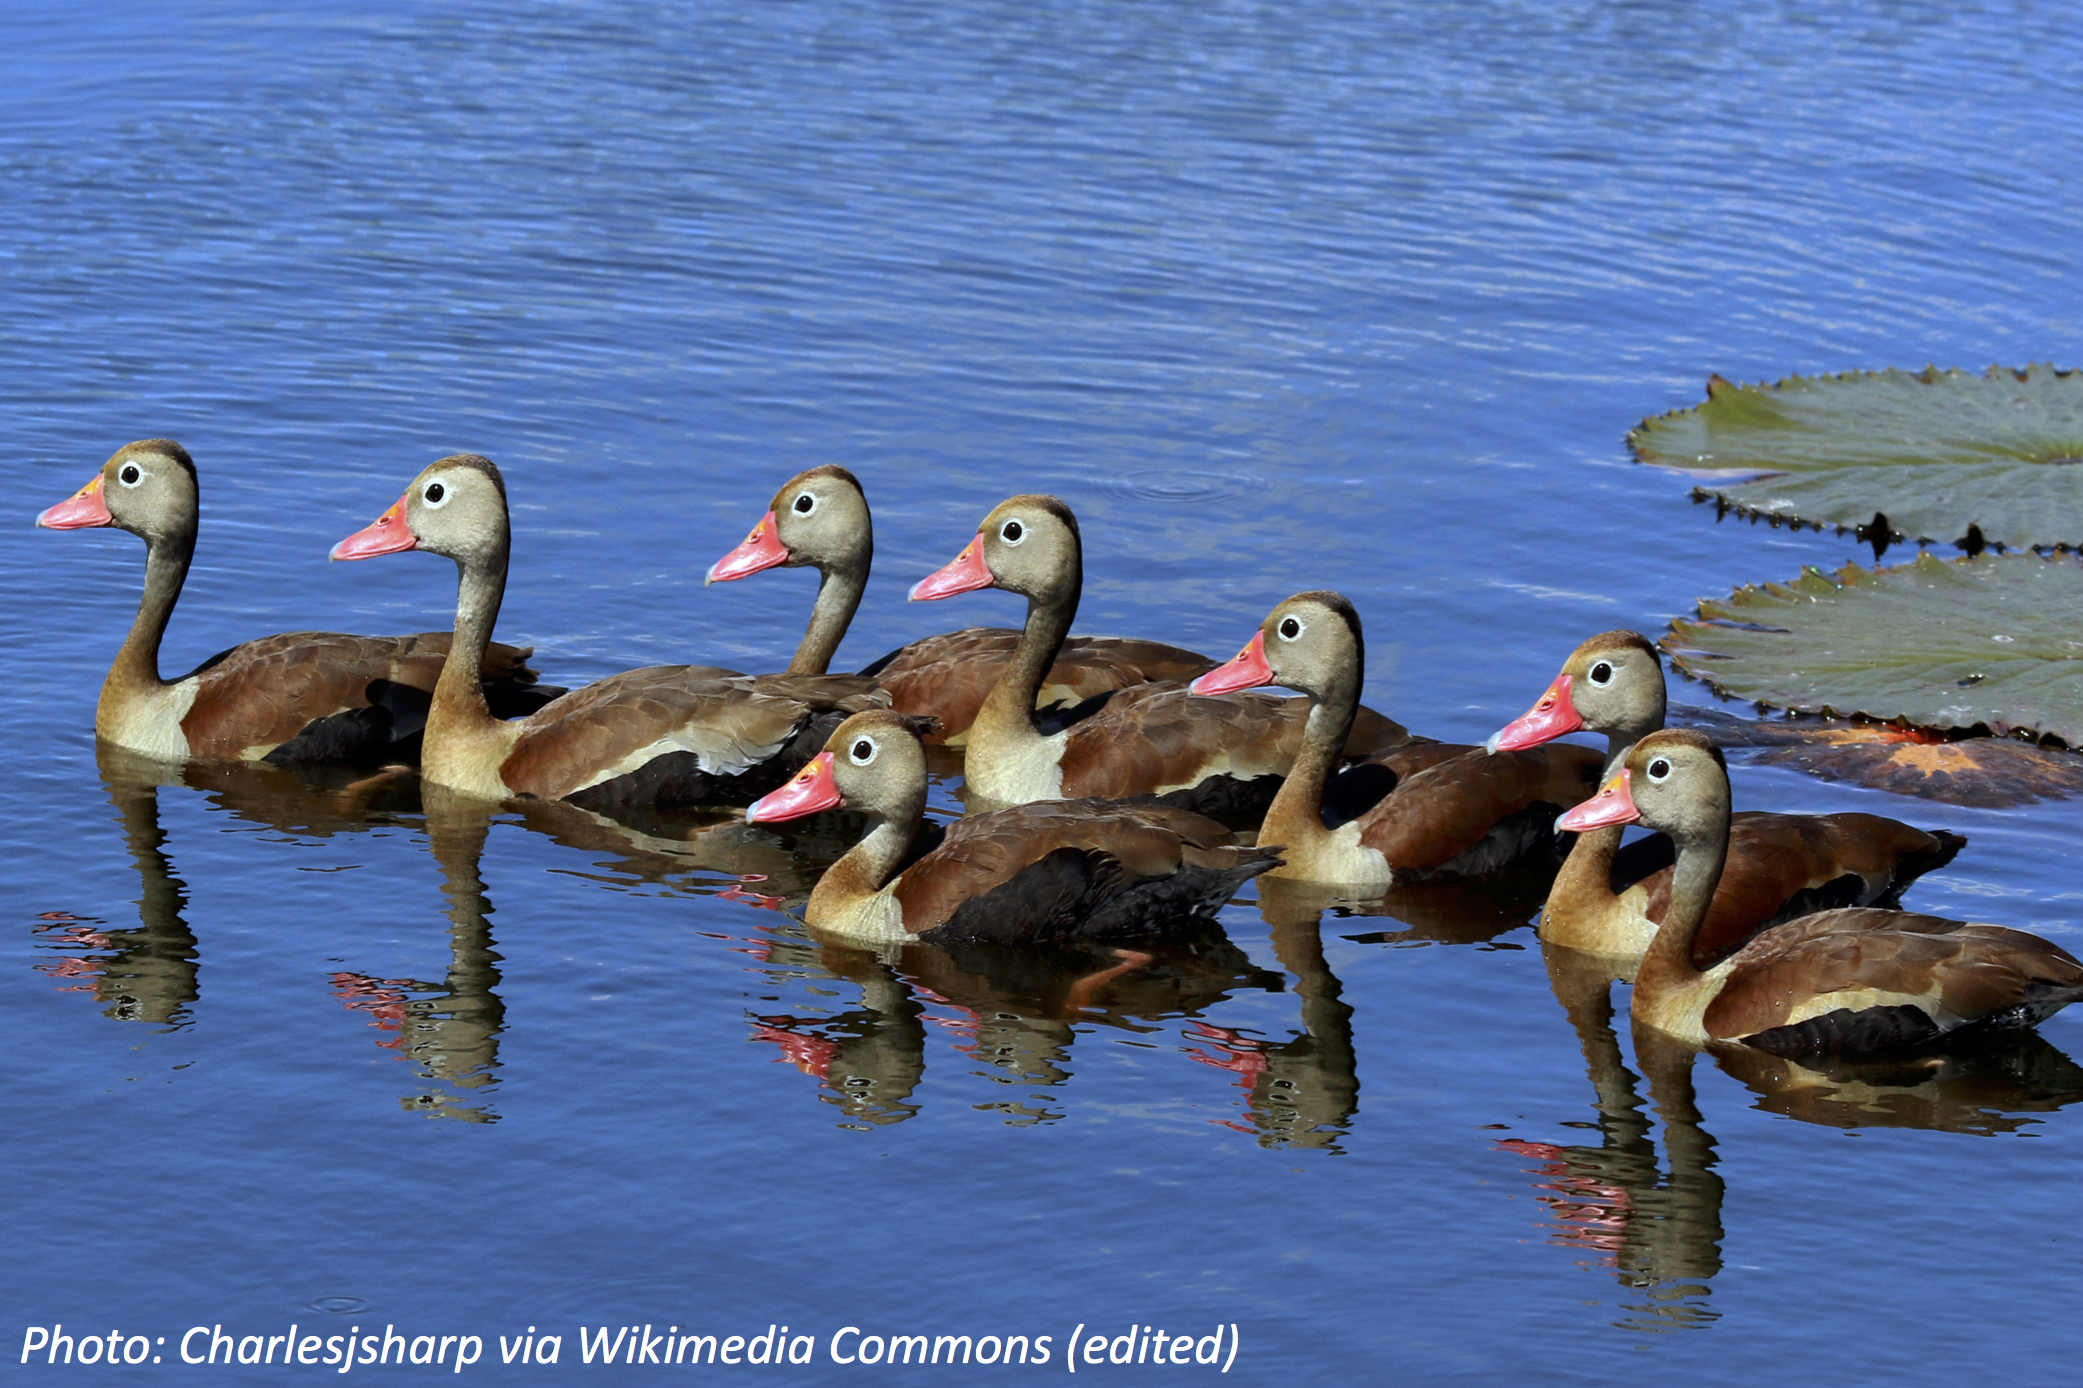 Ducks of a Different Color